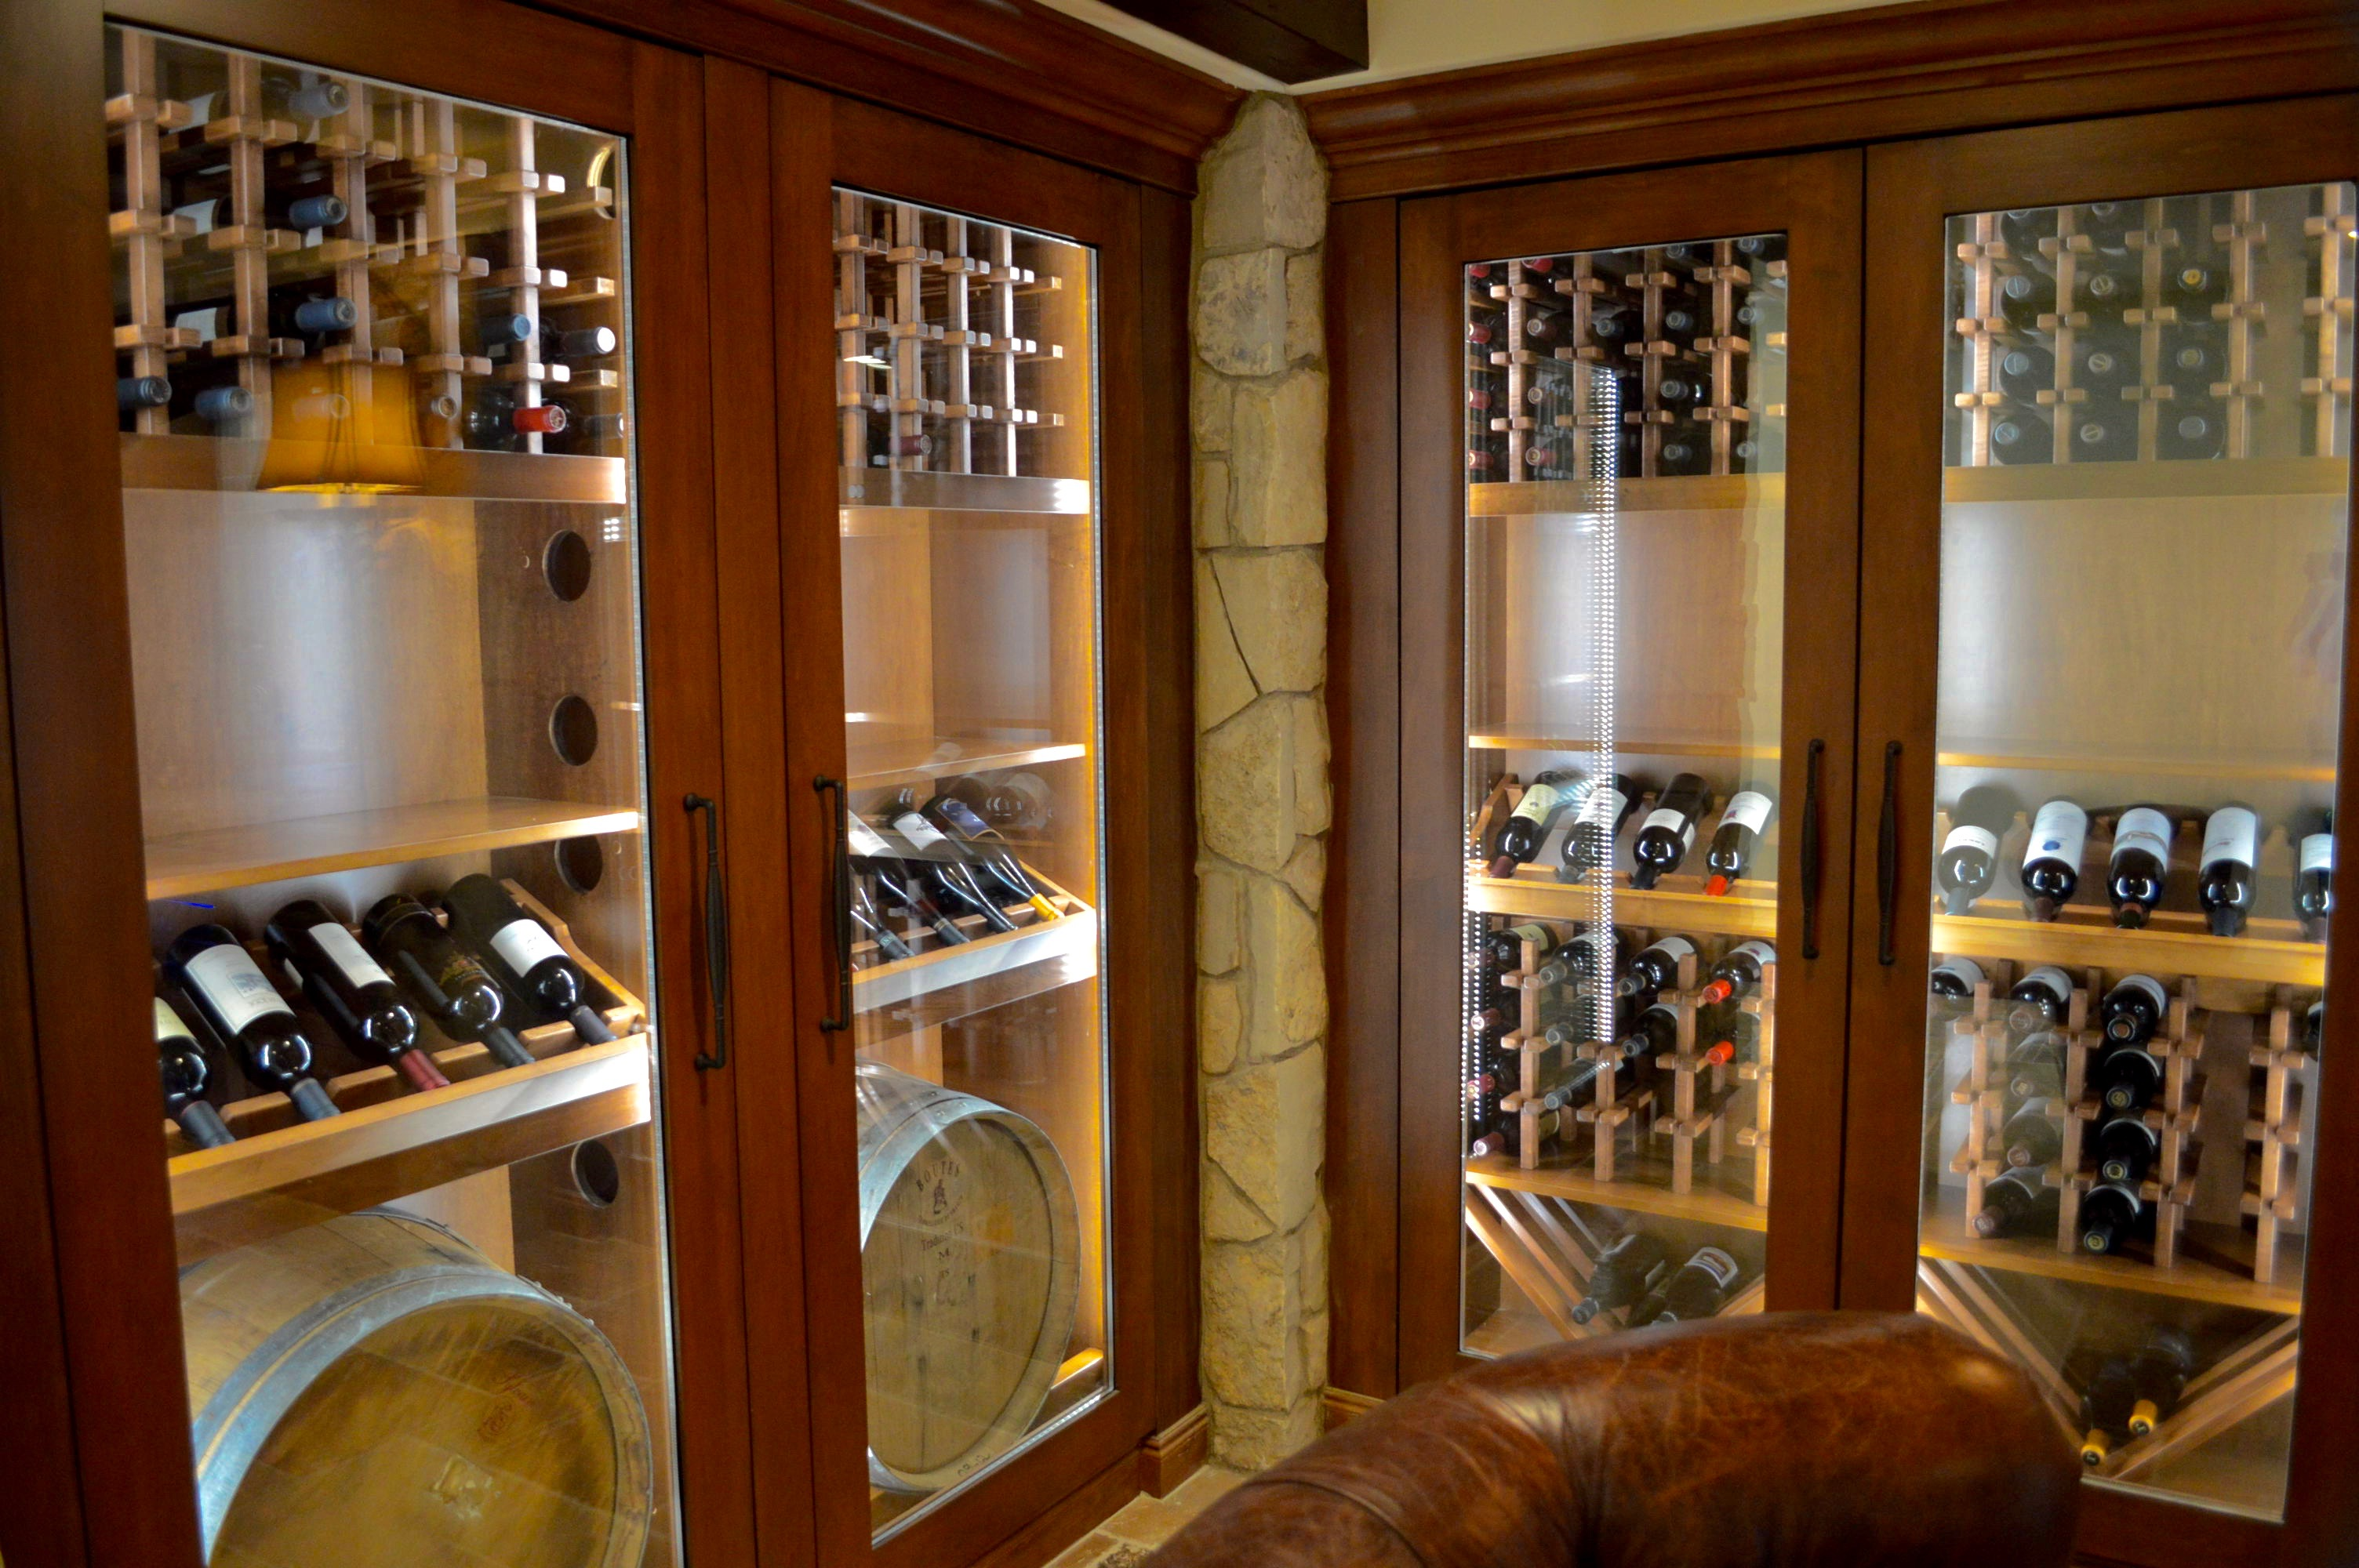 All of the four custom wine cabinets are cooled efficiently and effectively. And, since the refrigeration equipment is located in a separate room, there was no noise inside the storage structure.